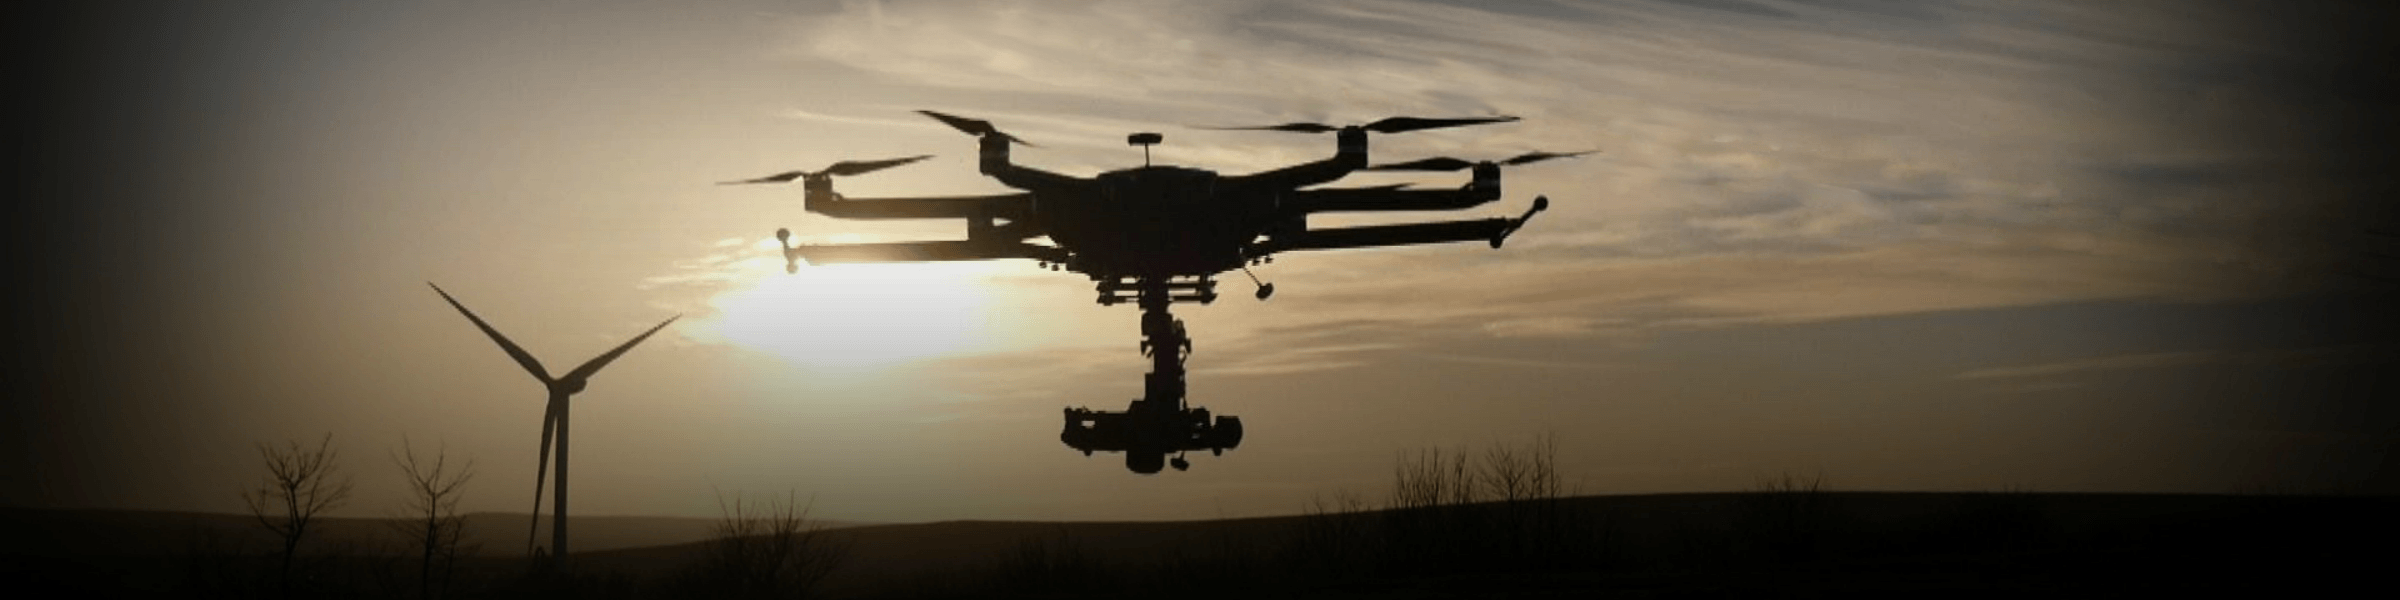 ClogWorks-Drone-Major-Consultancy-Services-Solutions-Hub